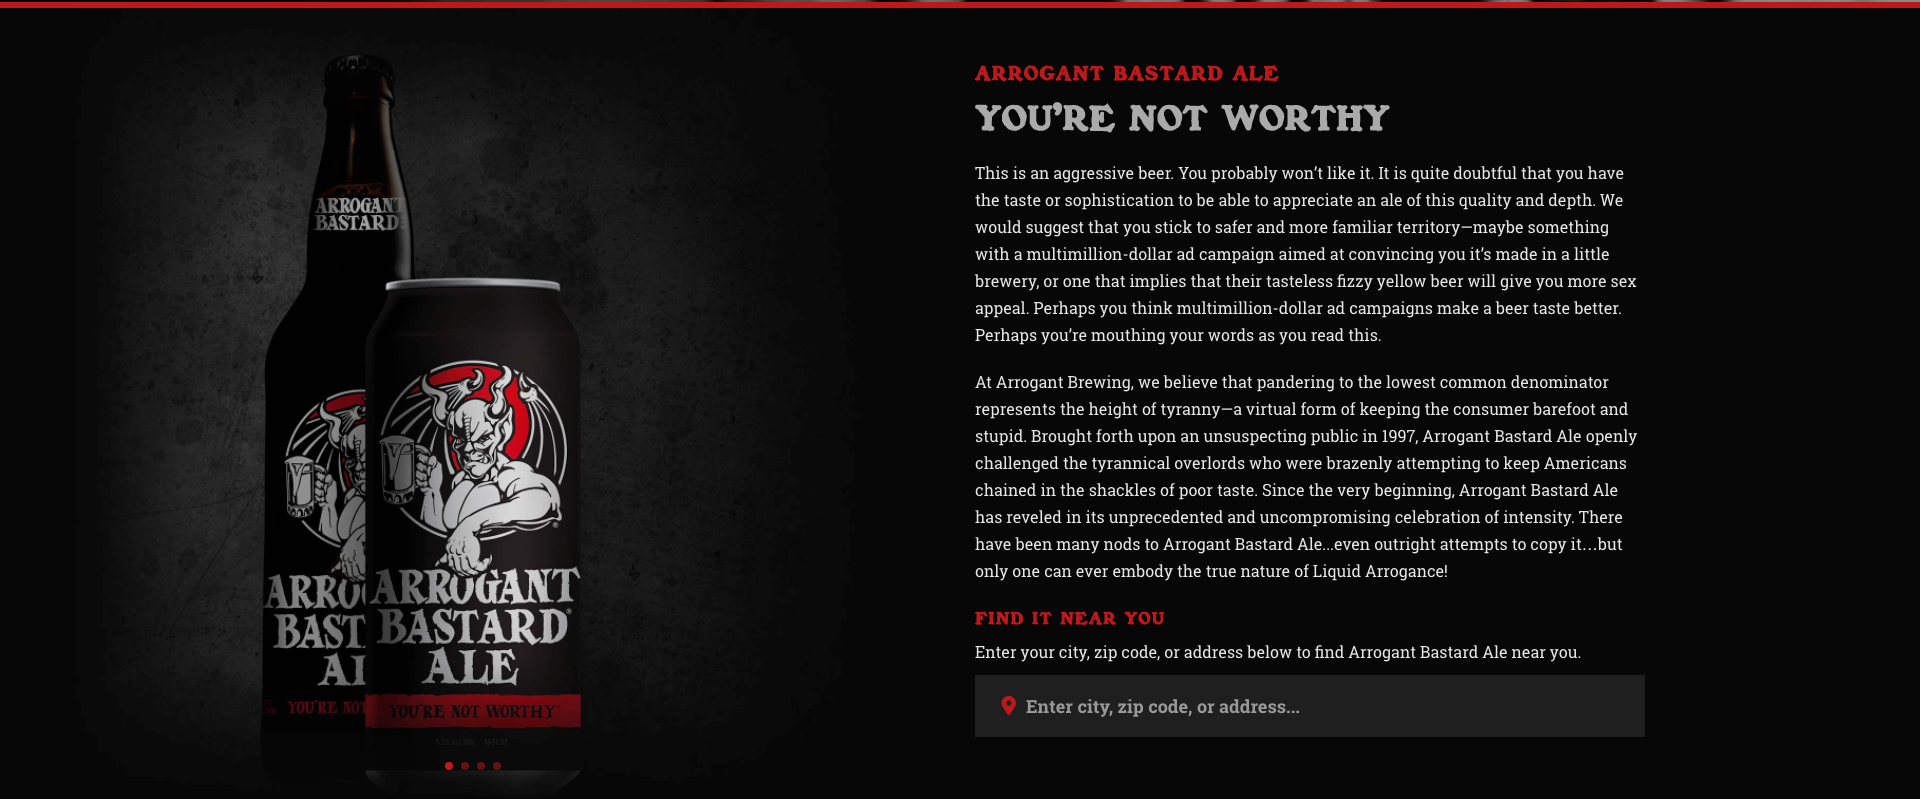 Ogilvy advertising Arrogant Bastard Ale ad